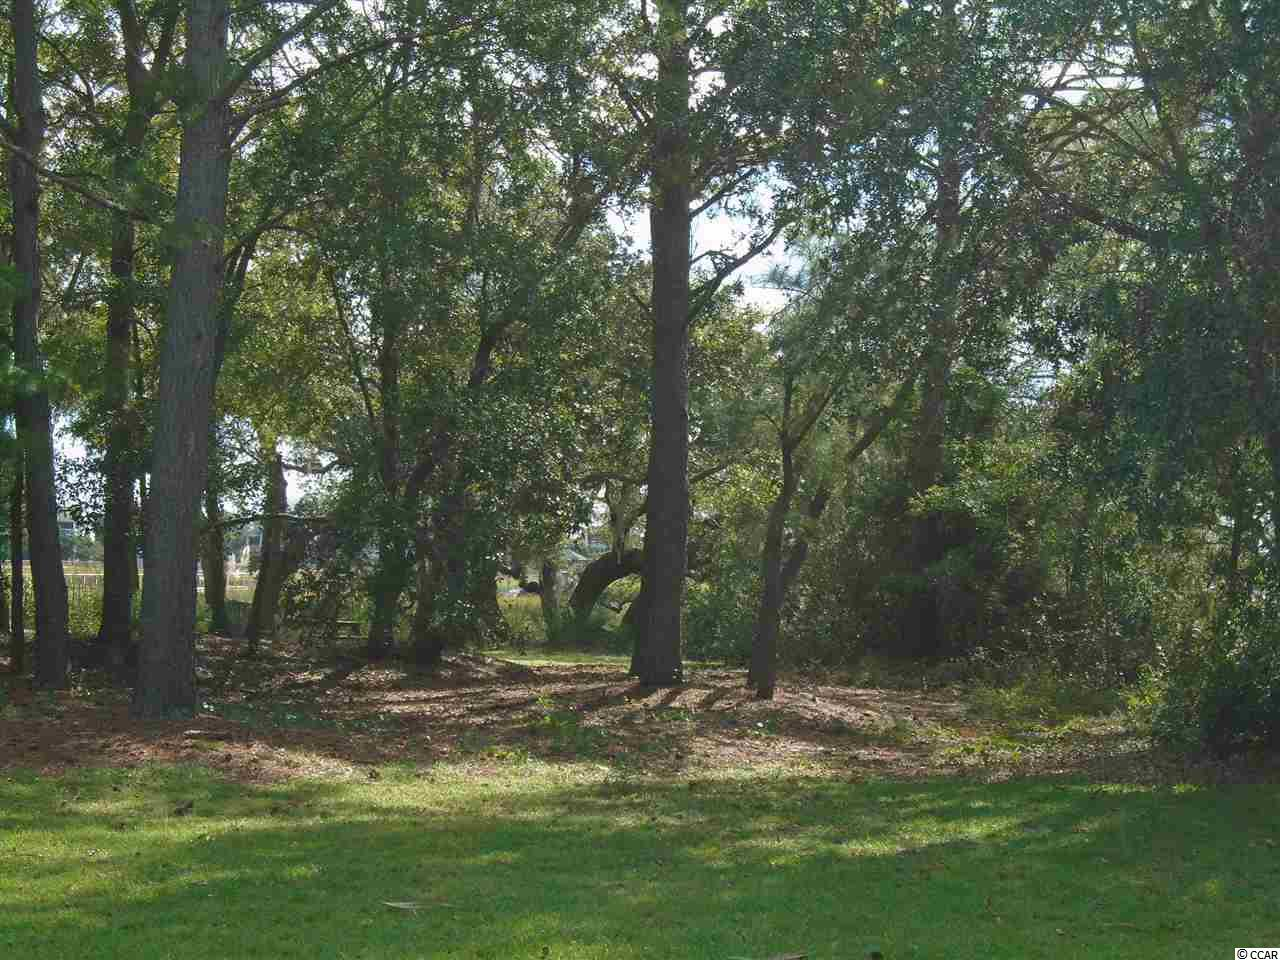 This homesite is one of the last of it's kind available.  Beautiful trees and easy access to Litchfield and Pawleys Creek.  Wonderful marsh views.  Floating dock offers fishing, crabbing, boating and kayaking.  Definitely a piece of paradise.  This hidden community is available to only 10 lucky owners.